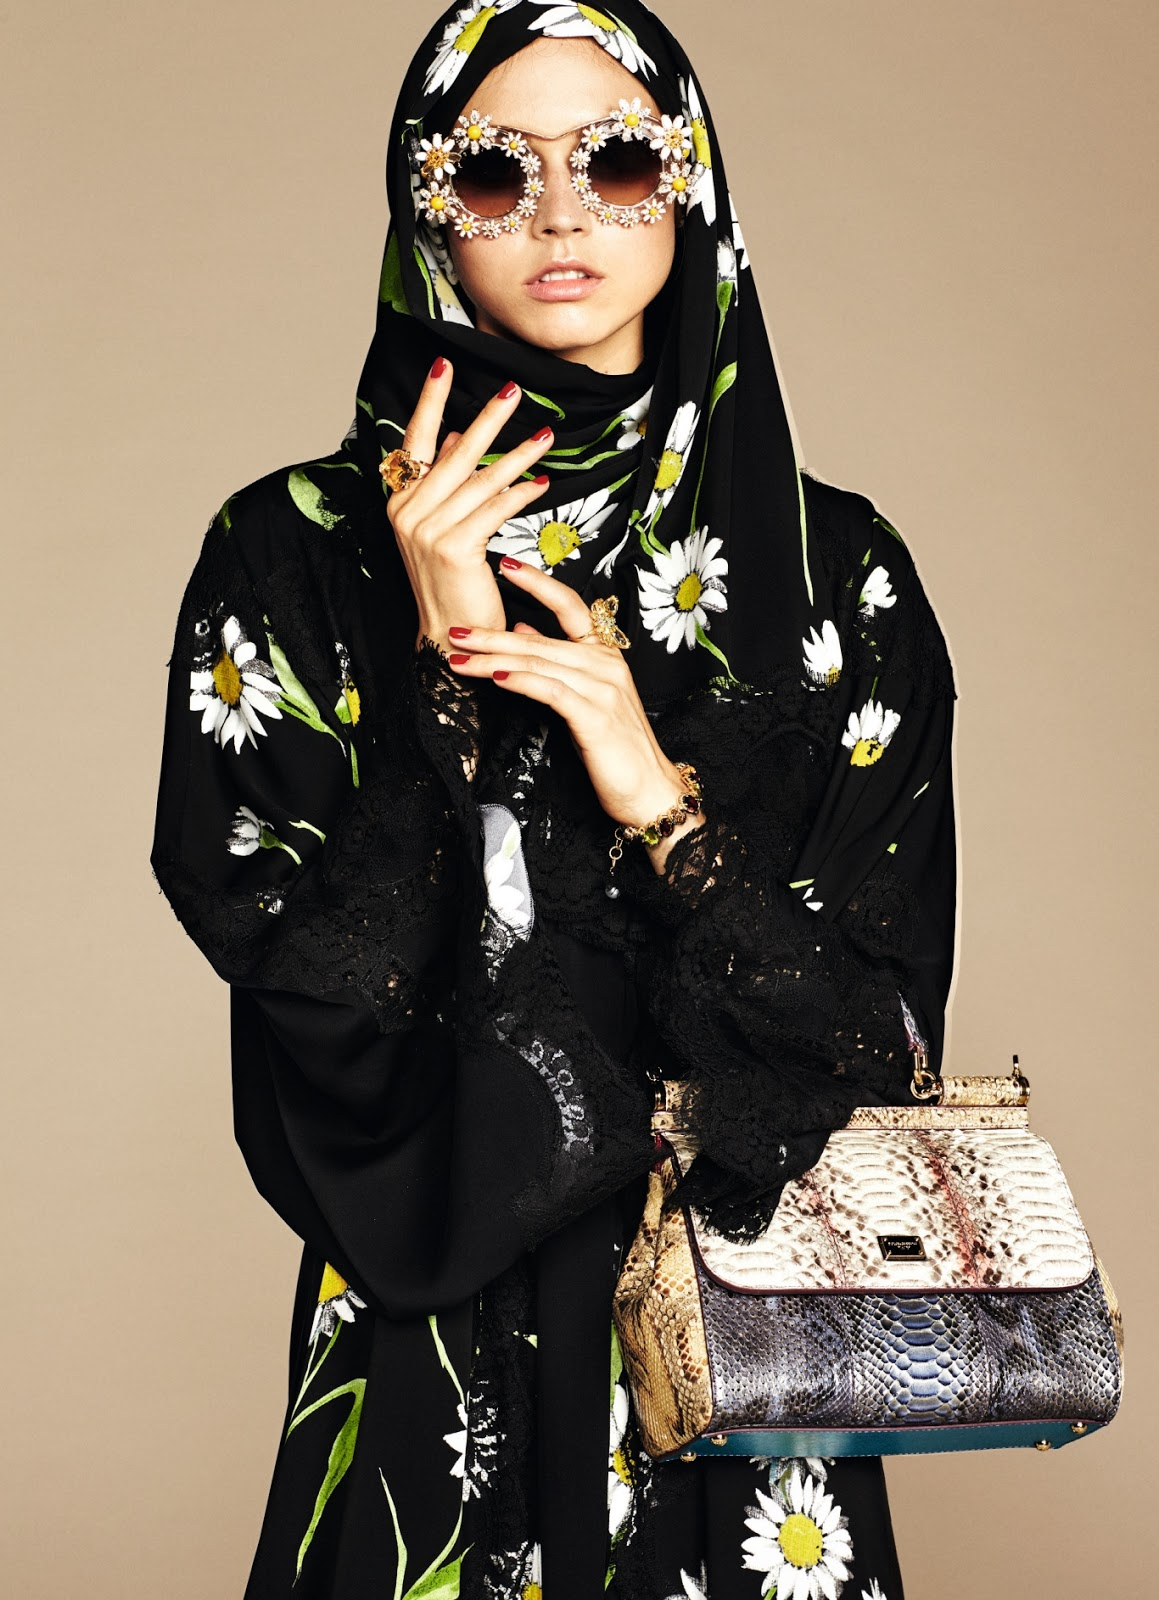 Yves Saint Laurent hates Islamic fashion